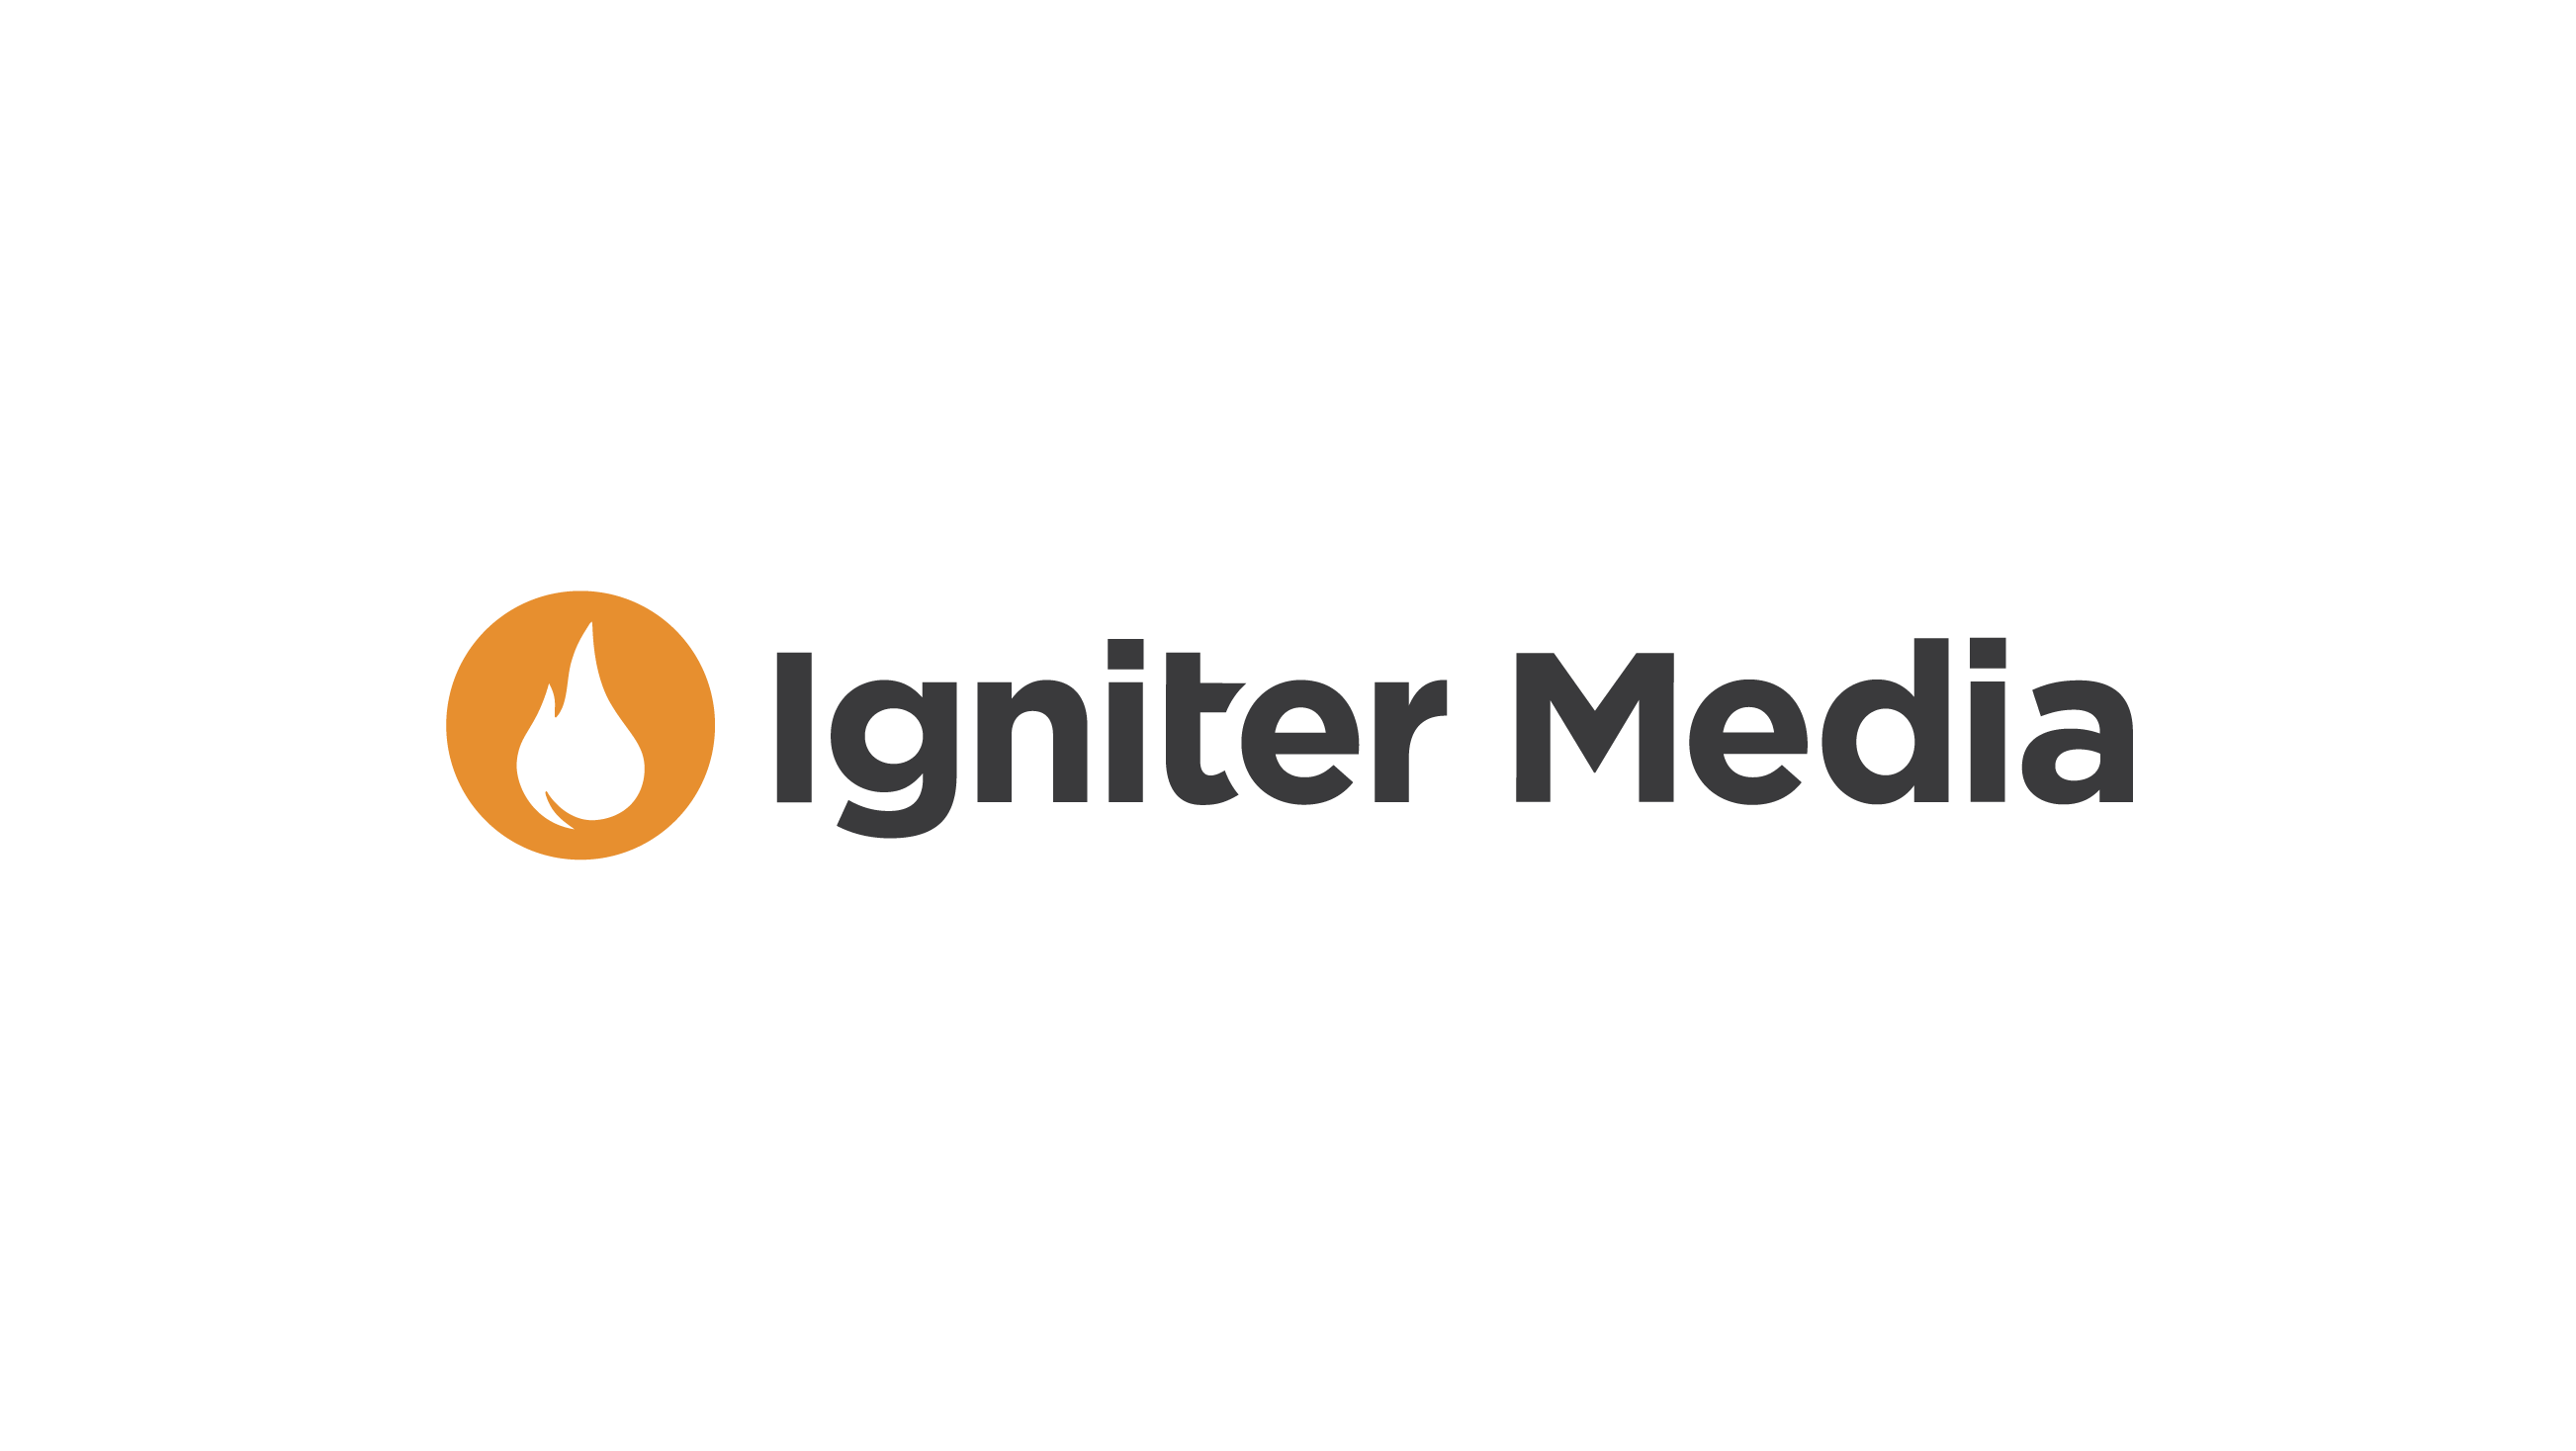 Church Media from Igniter Media